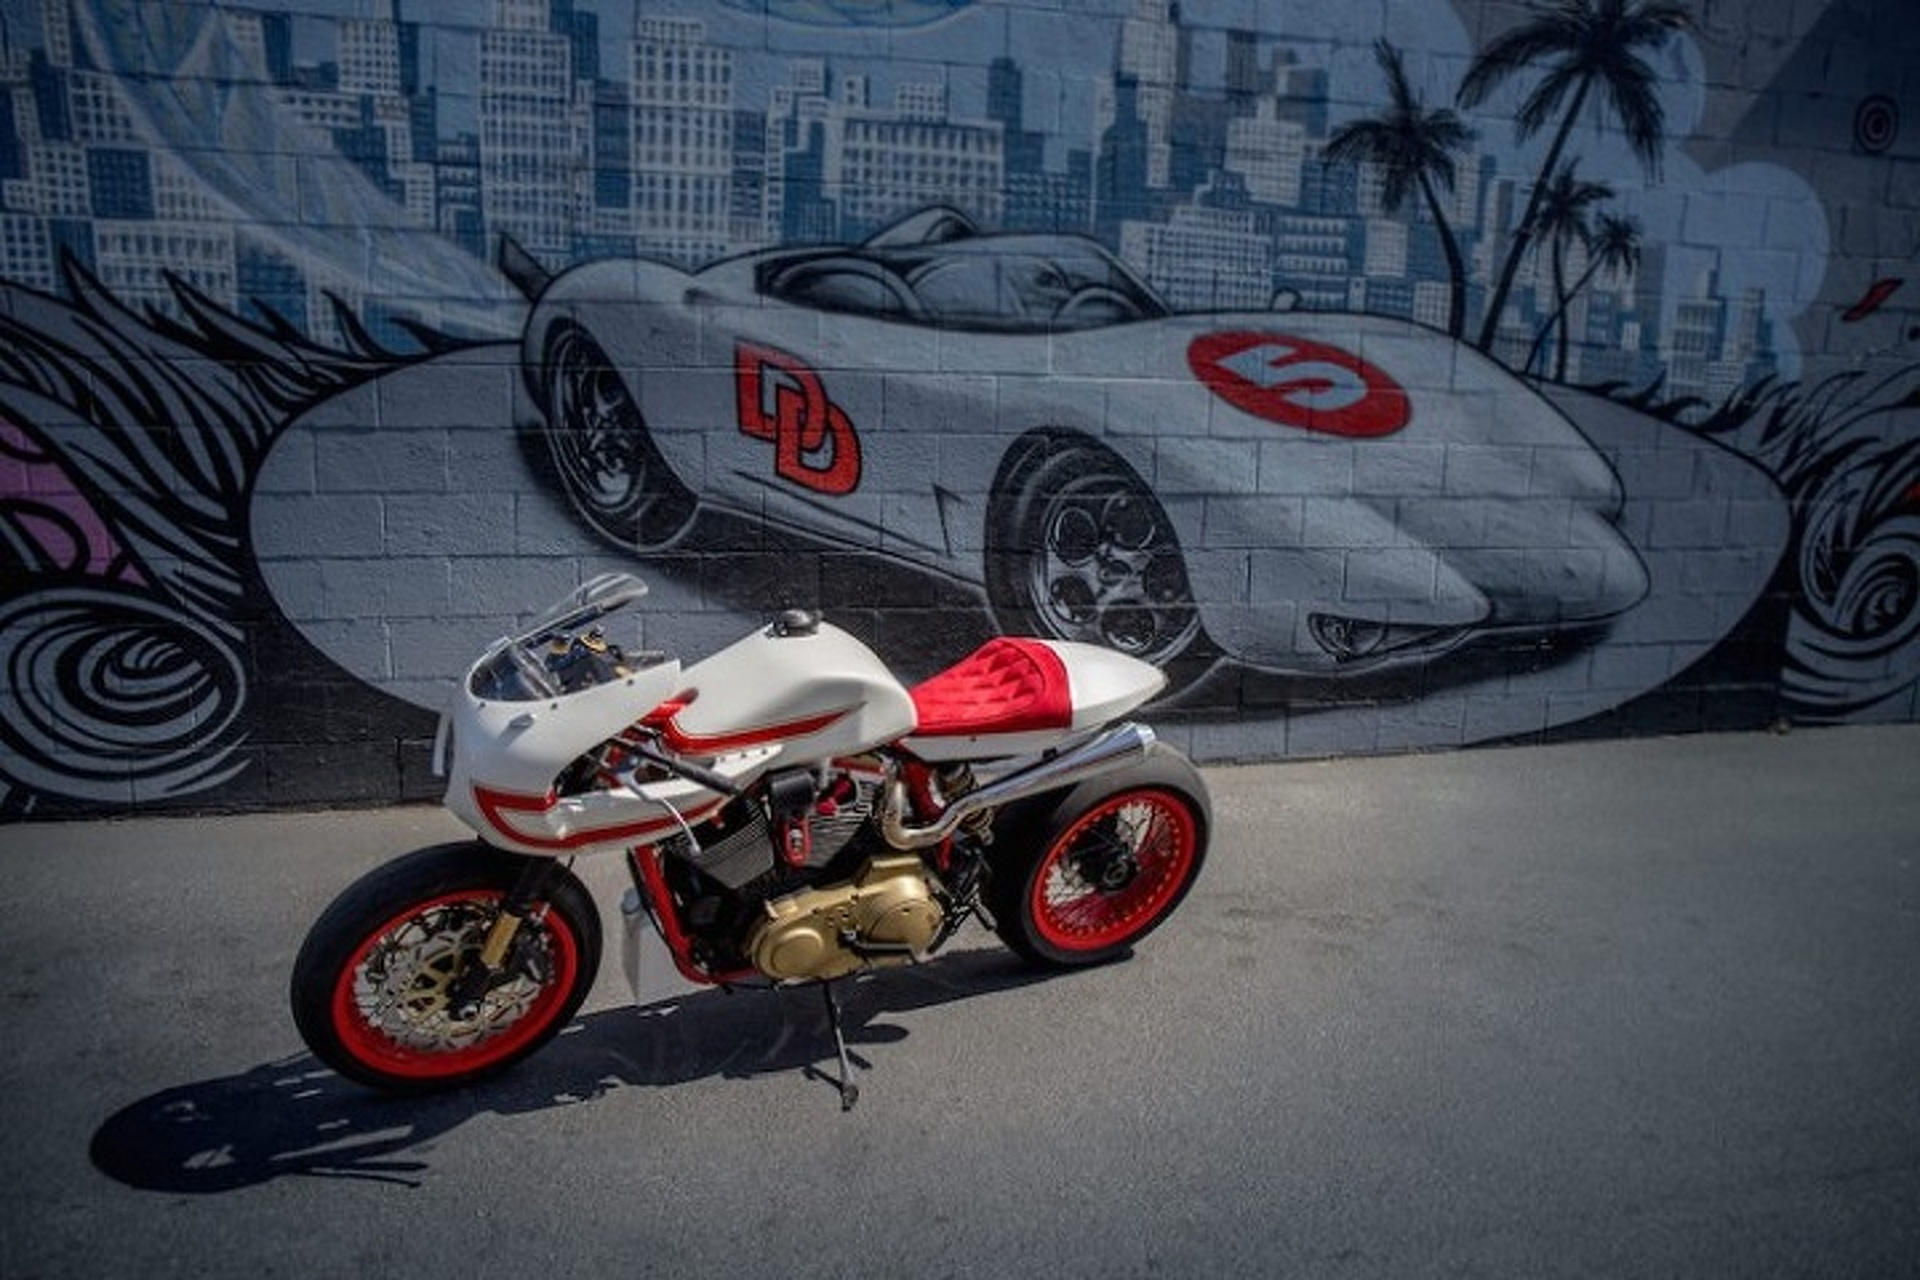 'Speed Racer' Harley-Davidson Looks Just Like The Mach 5